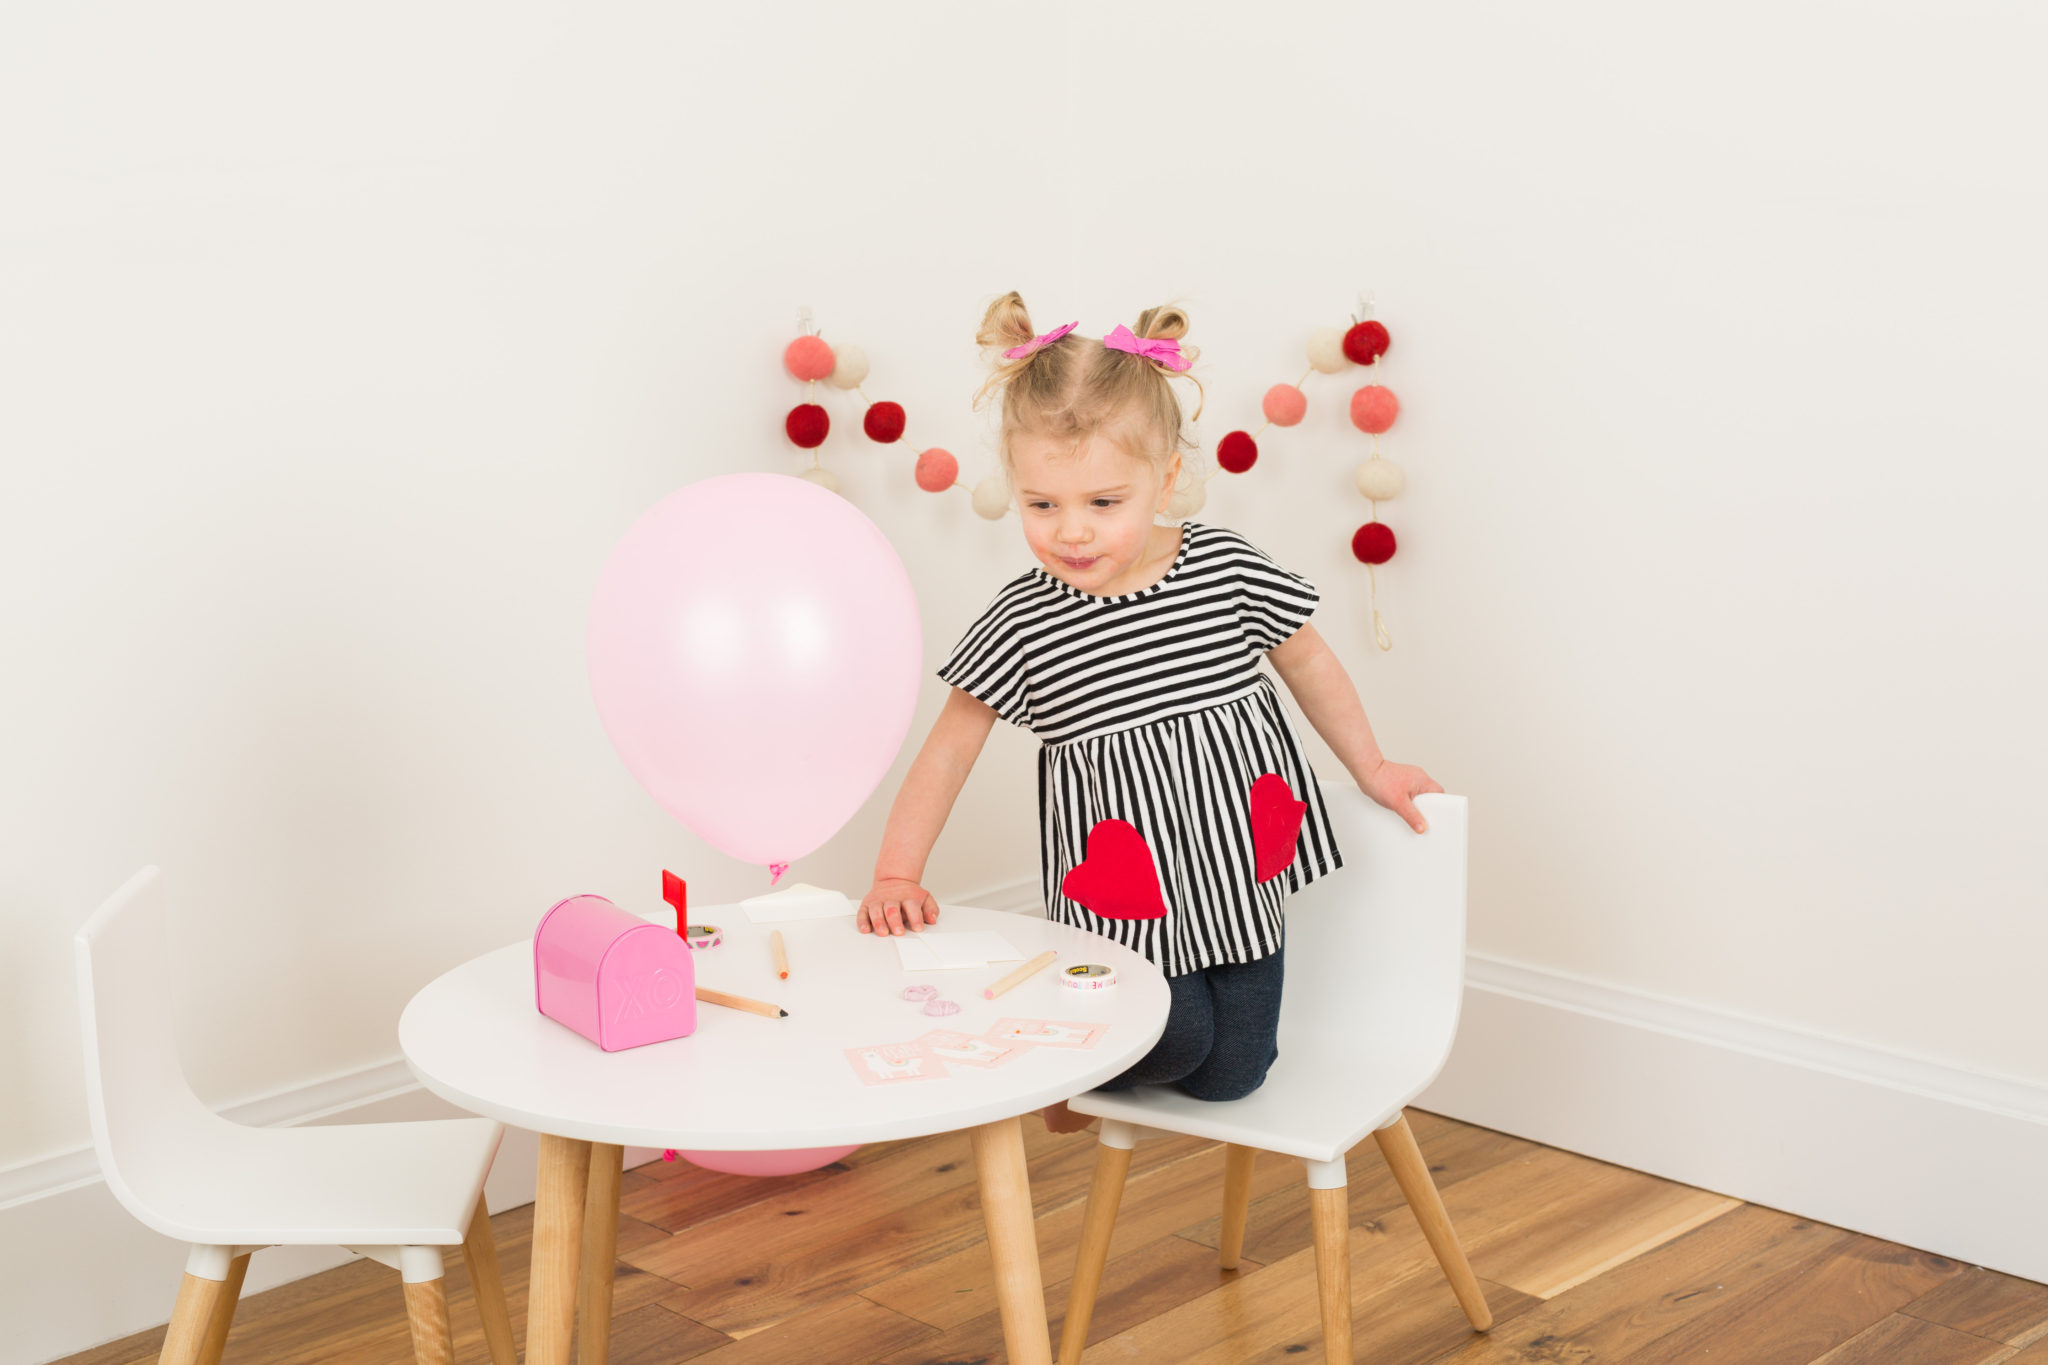 minted classroom valentine's on allweareblog.com | valentine's decor | toddler girl valentine's day outfit